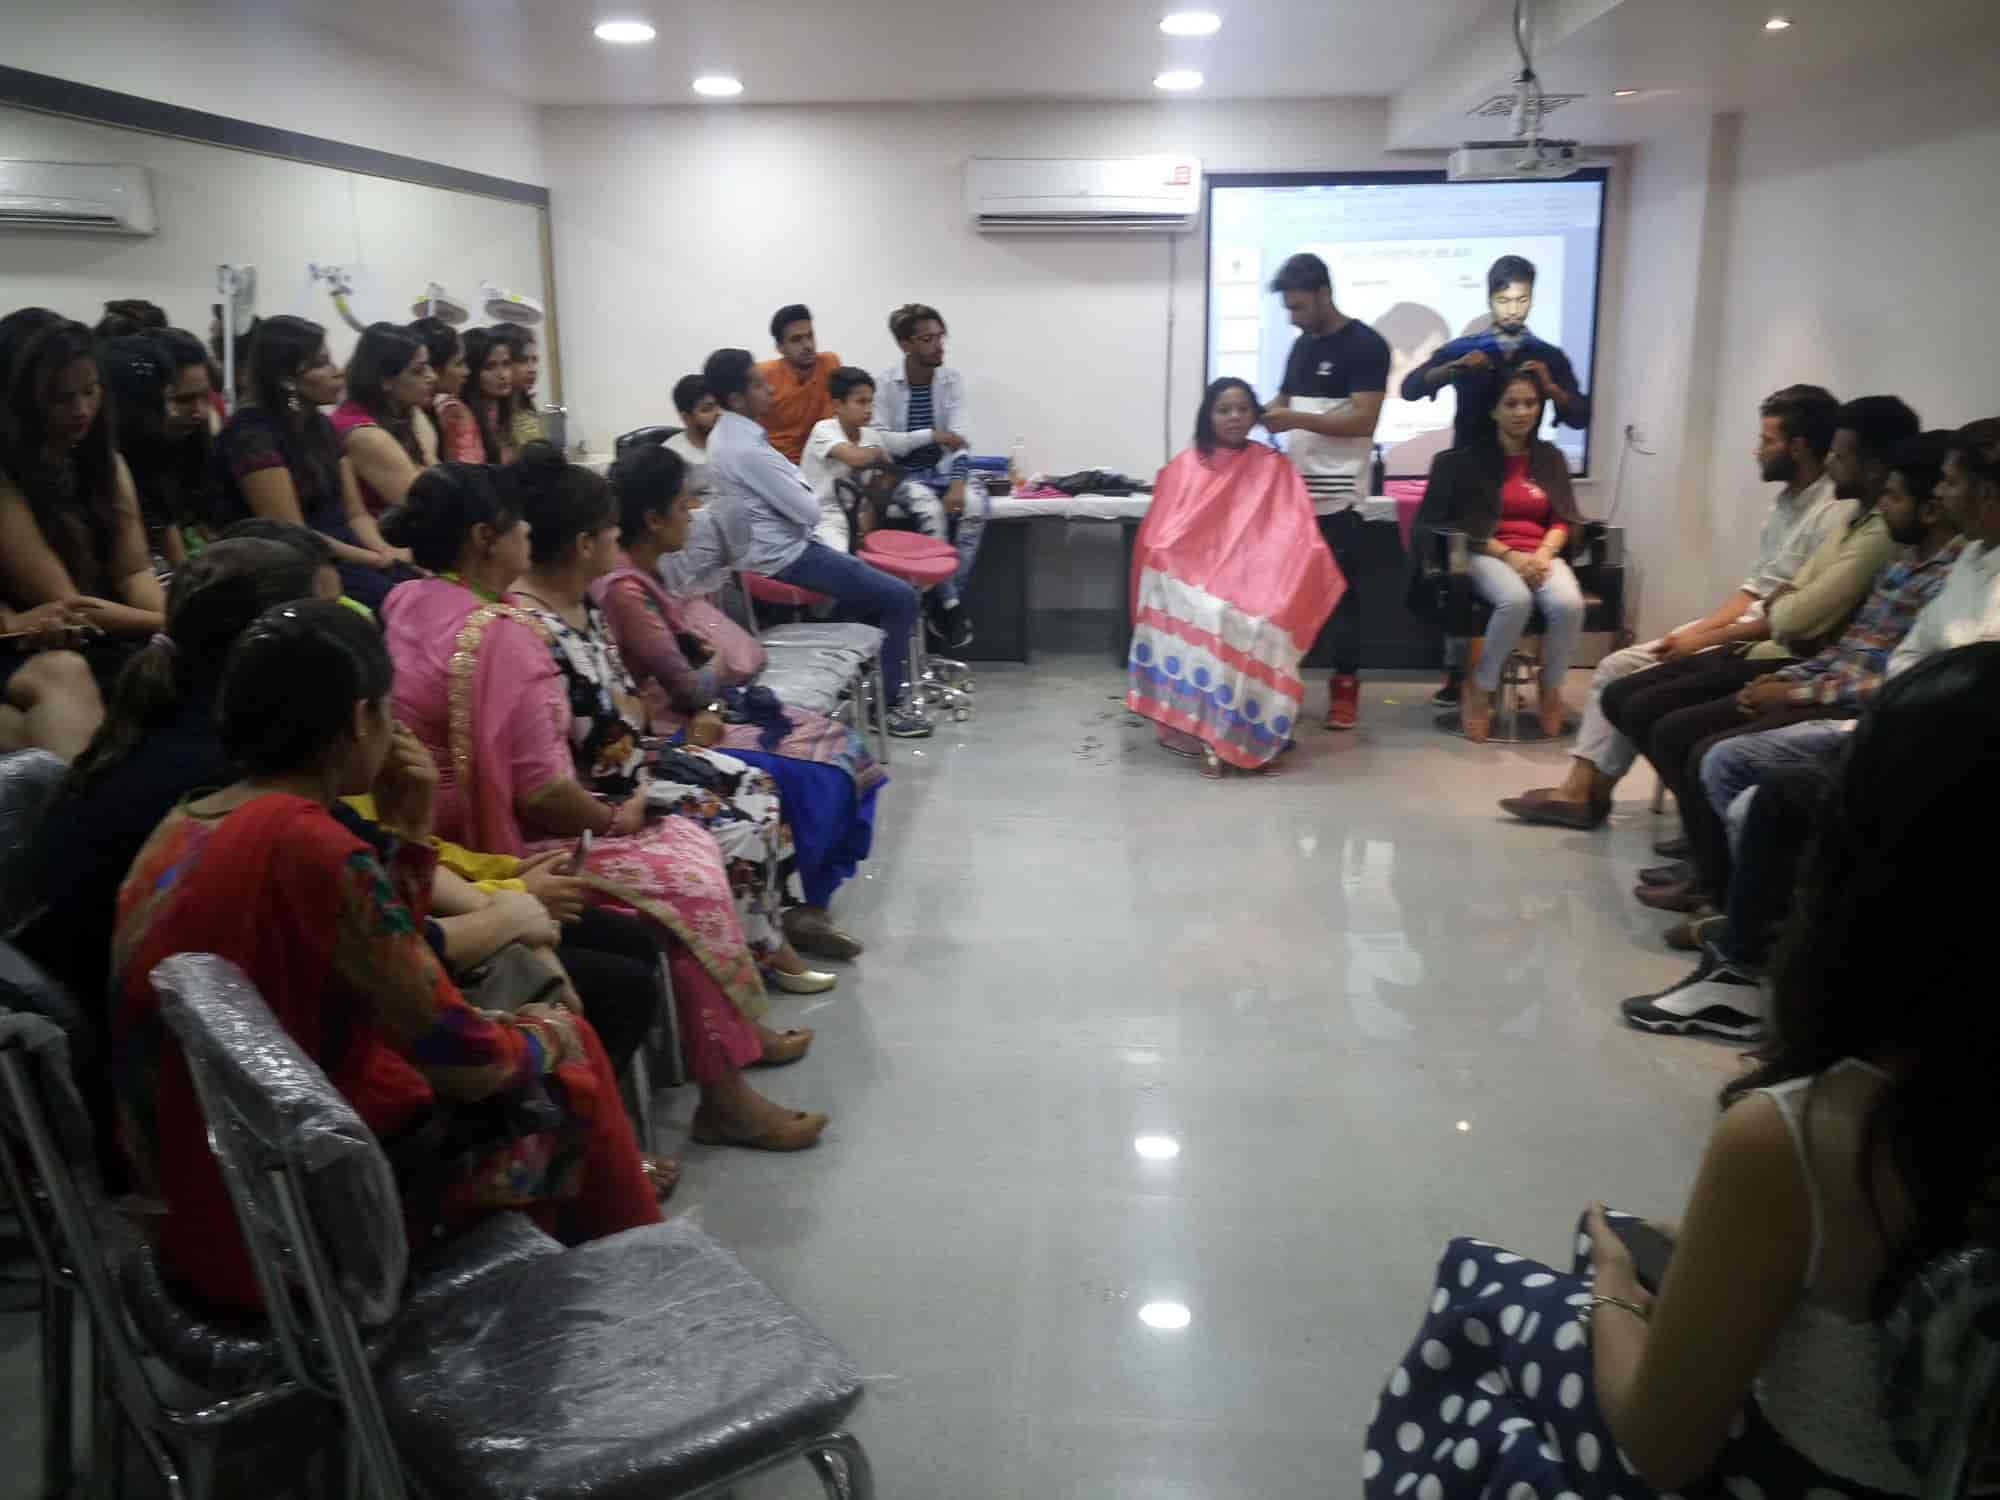 Lakme Academy Powered By Aptech, Putligarh - Salons in